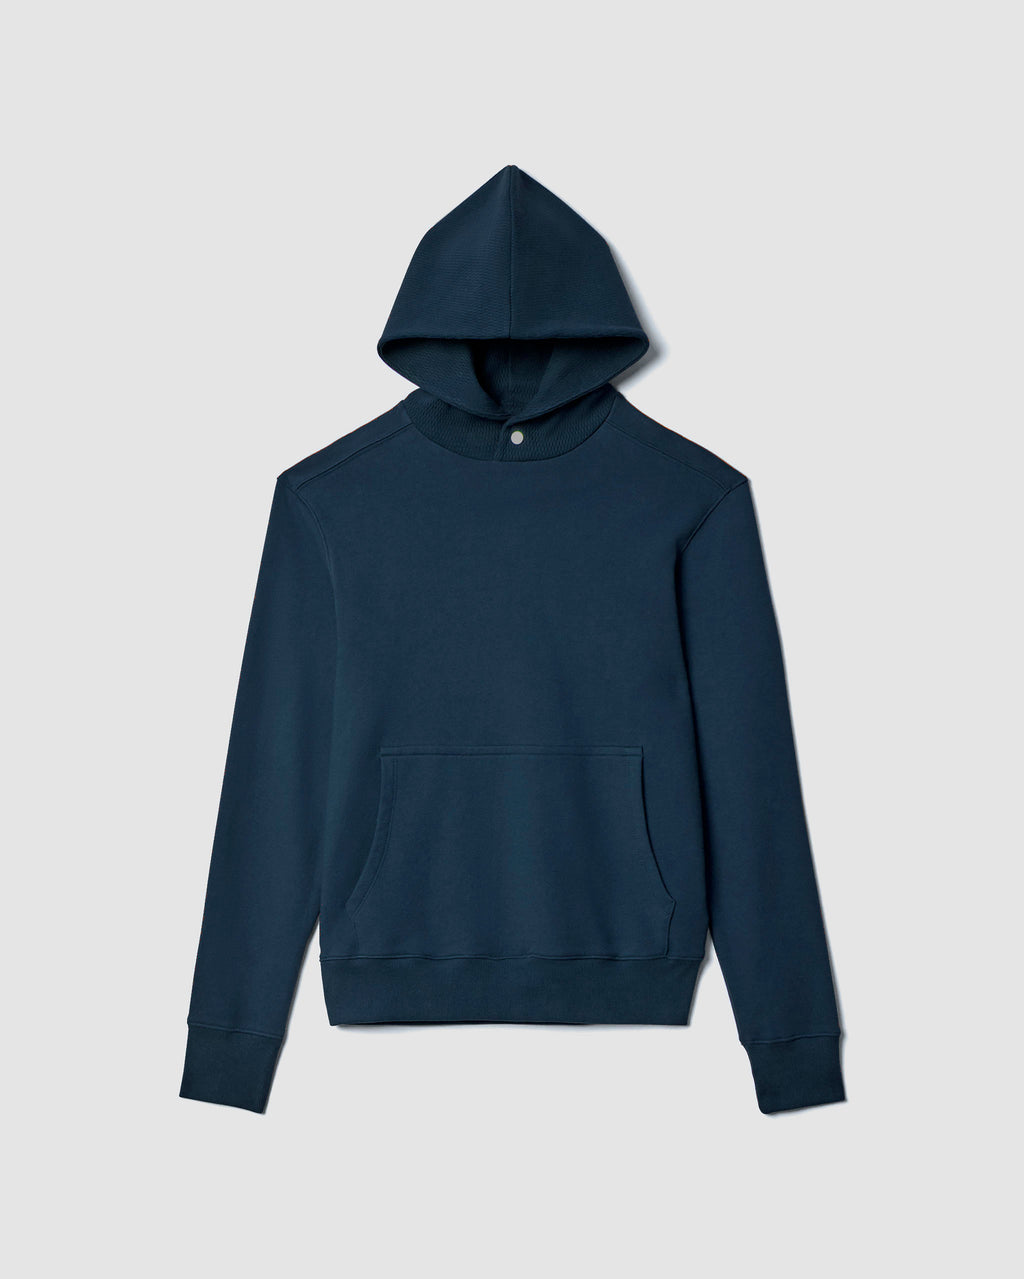 The Cale Hoodie in Midnight Navy